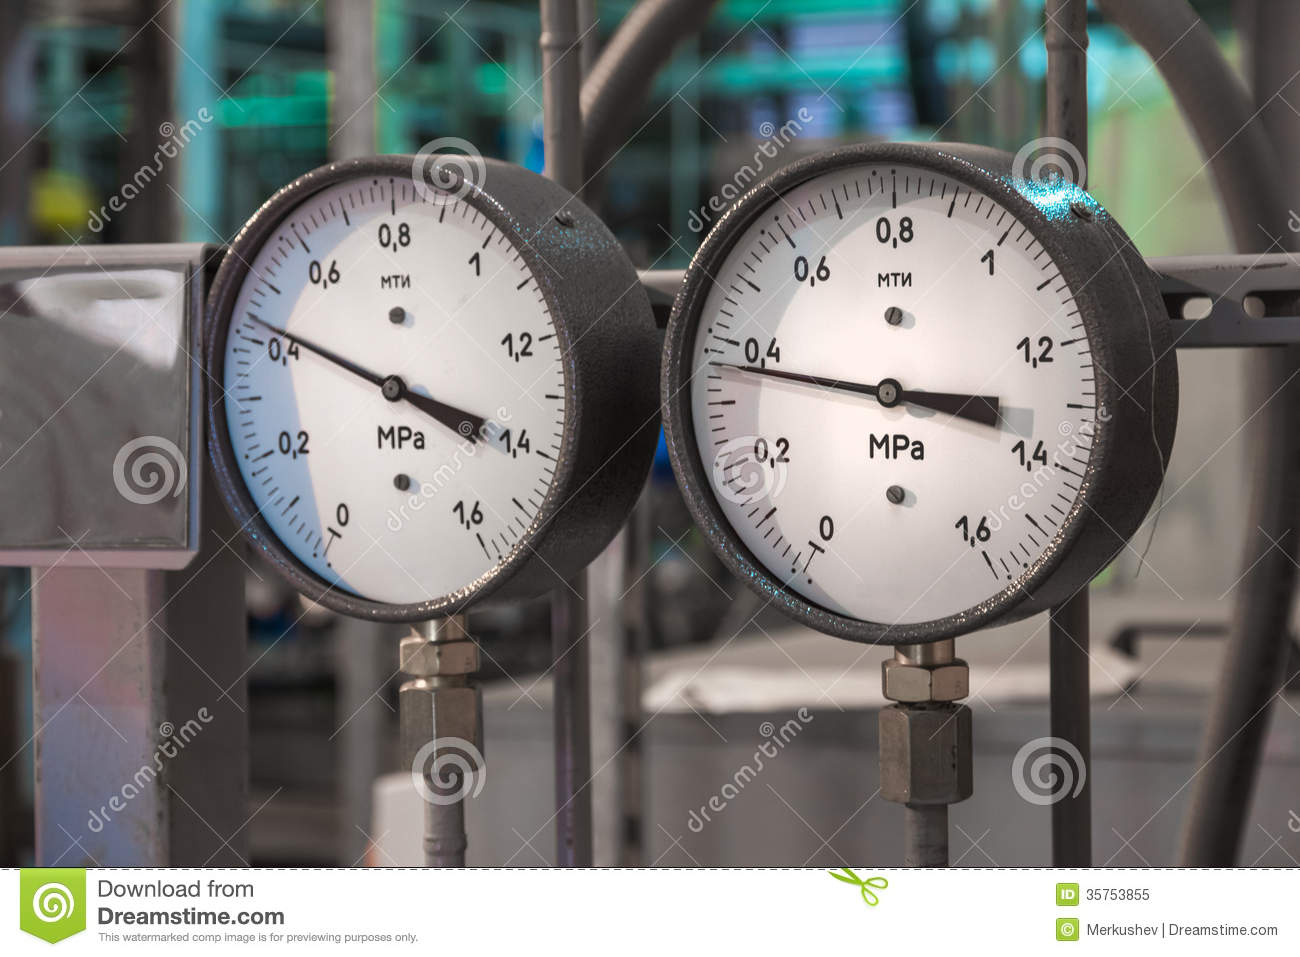 Manometers in de boiler